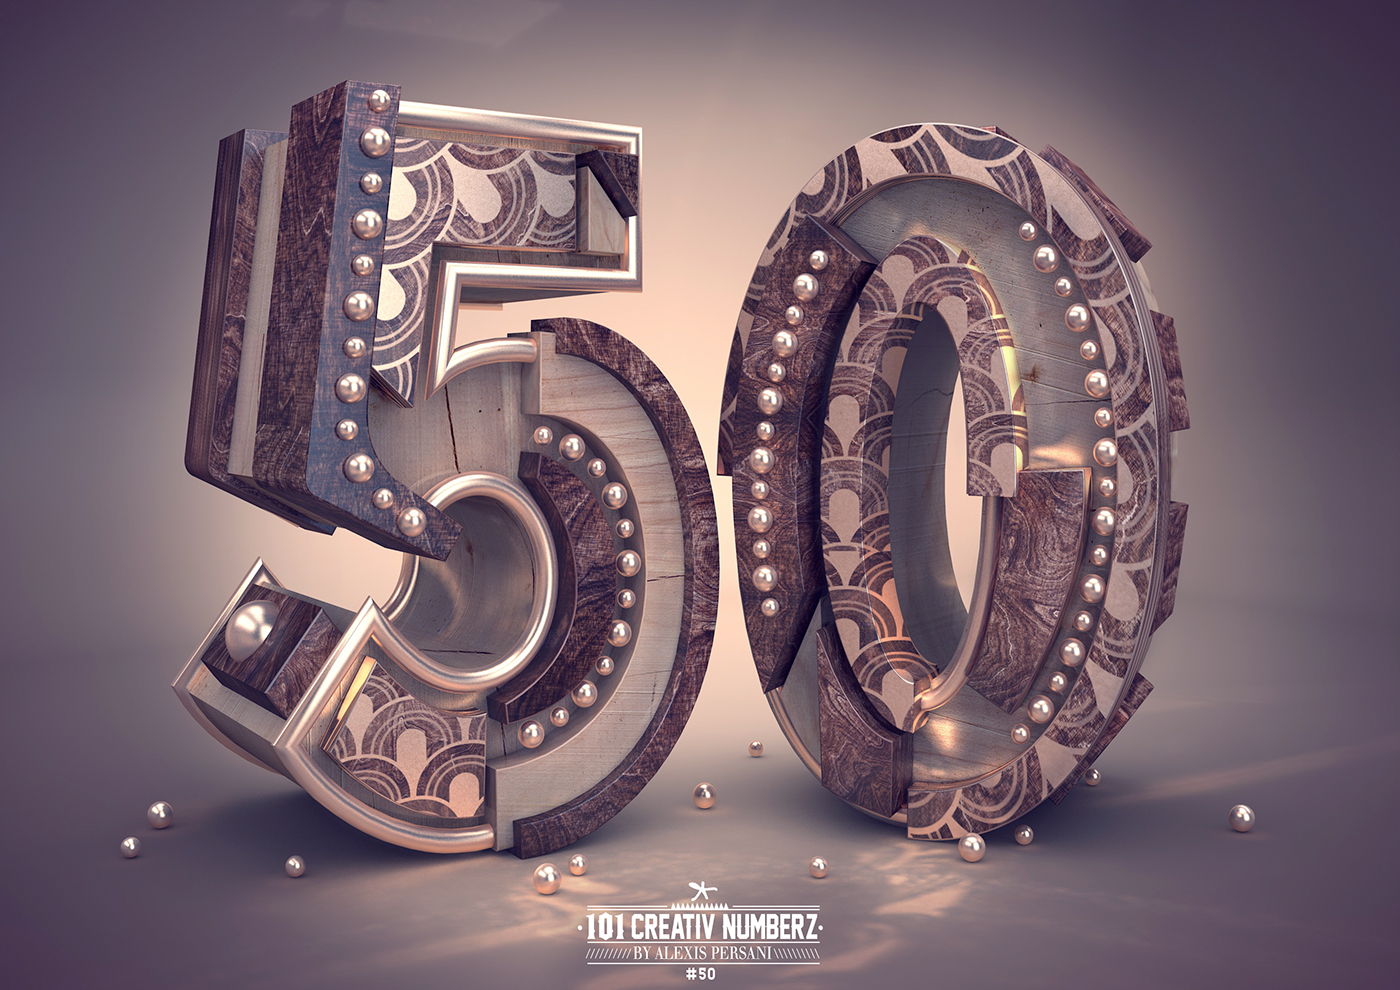 Outstanding 101 Creative Numbers Typography by Alexis Persani 46